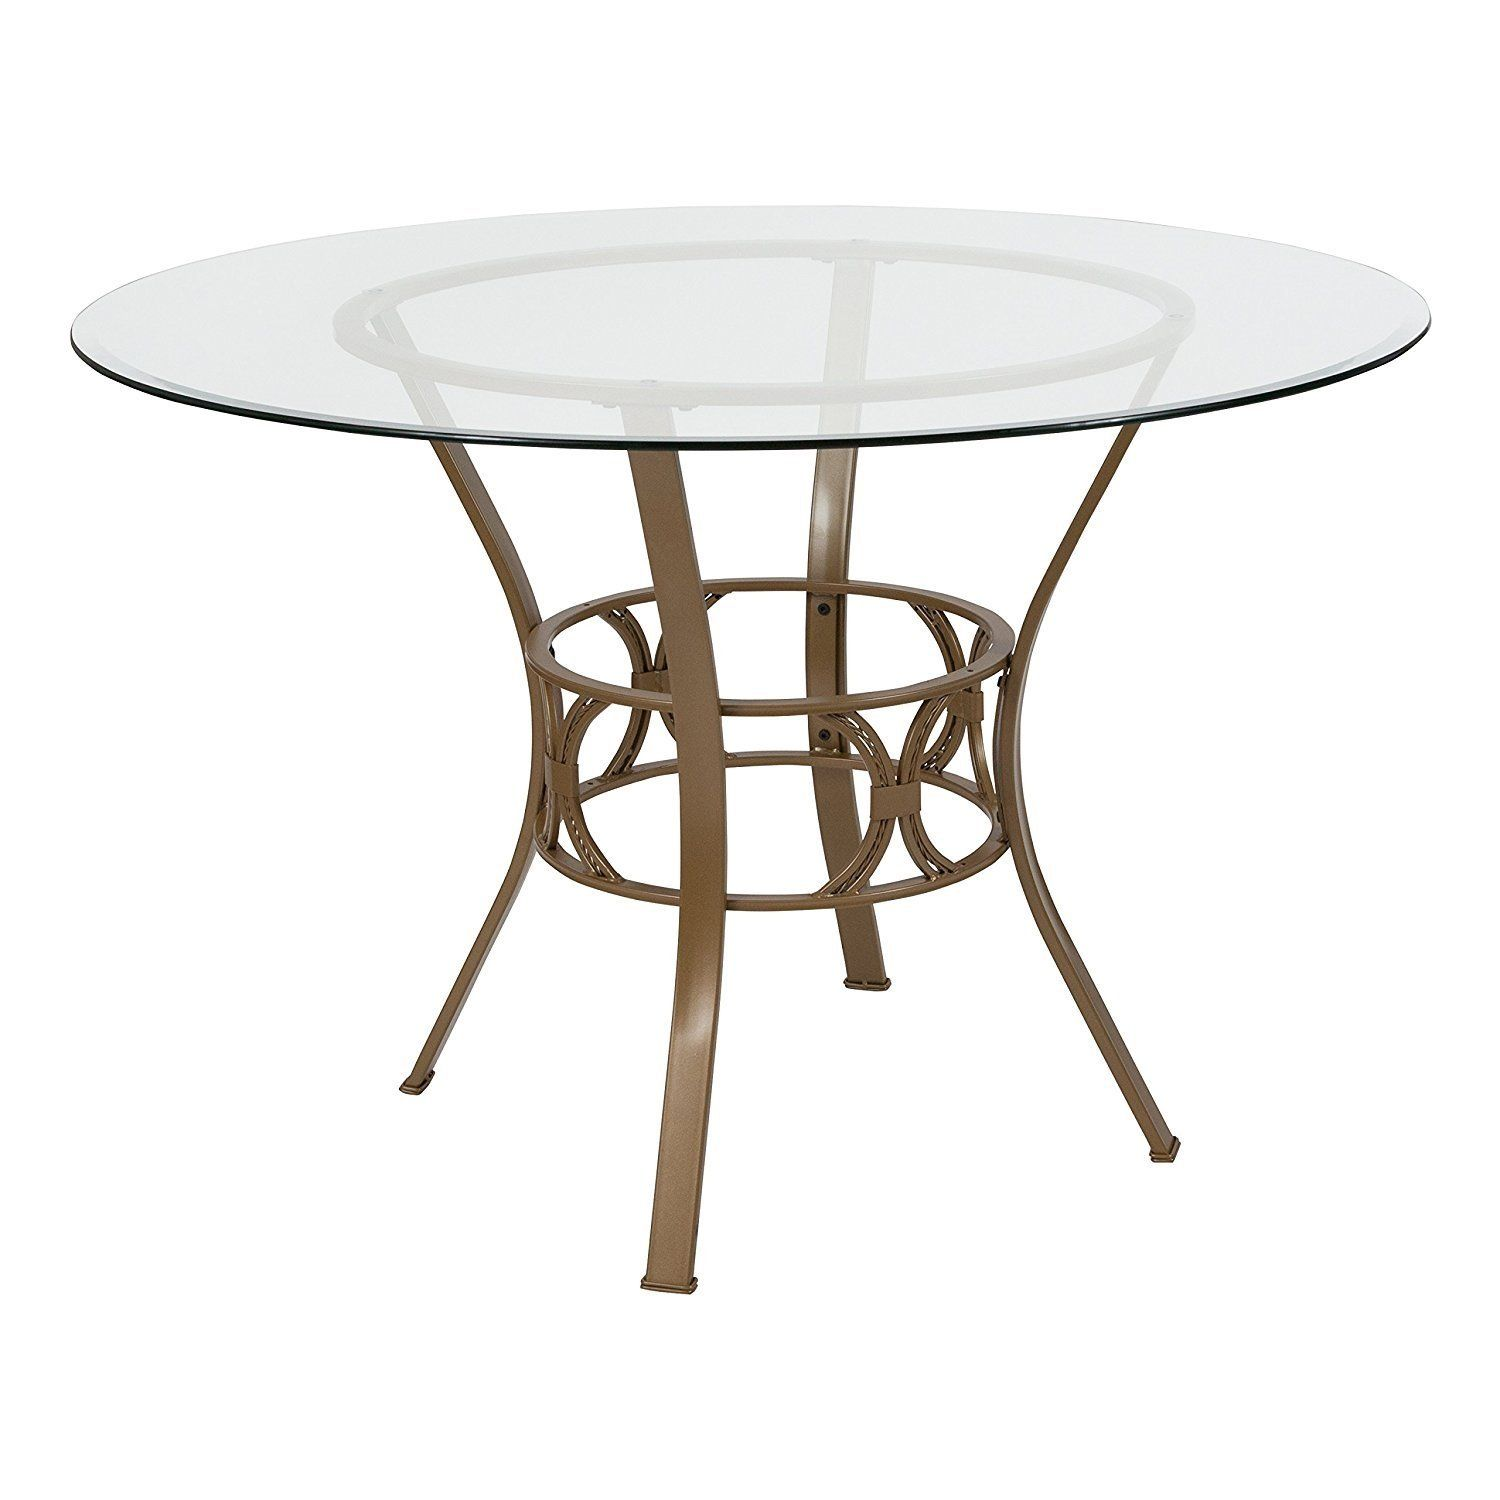 Round 45 Inch Clear Glass Top Dining Table With Matte Gold Metal